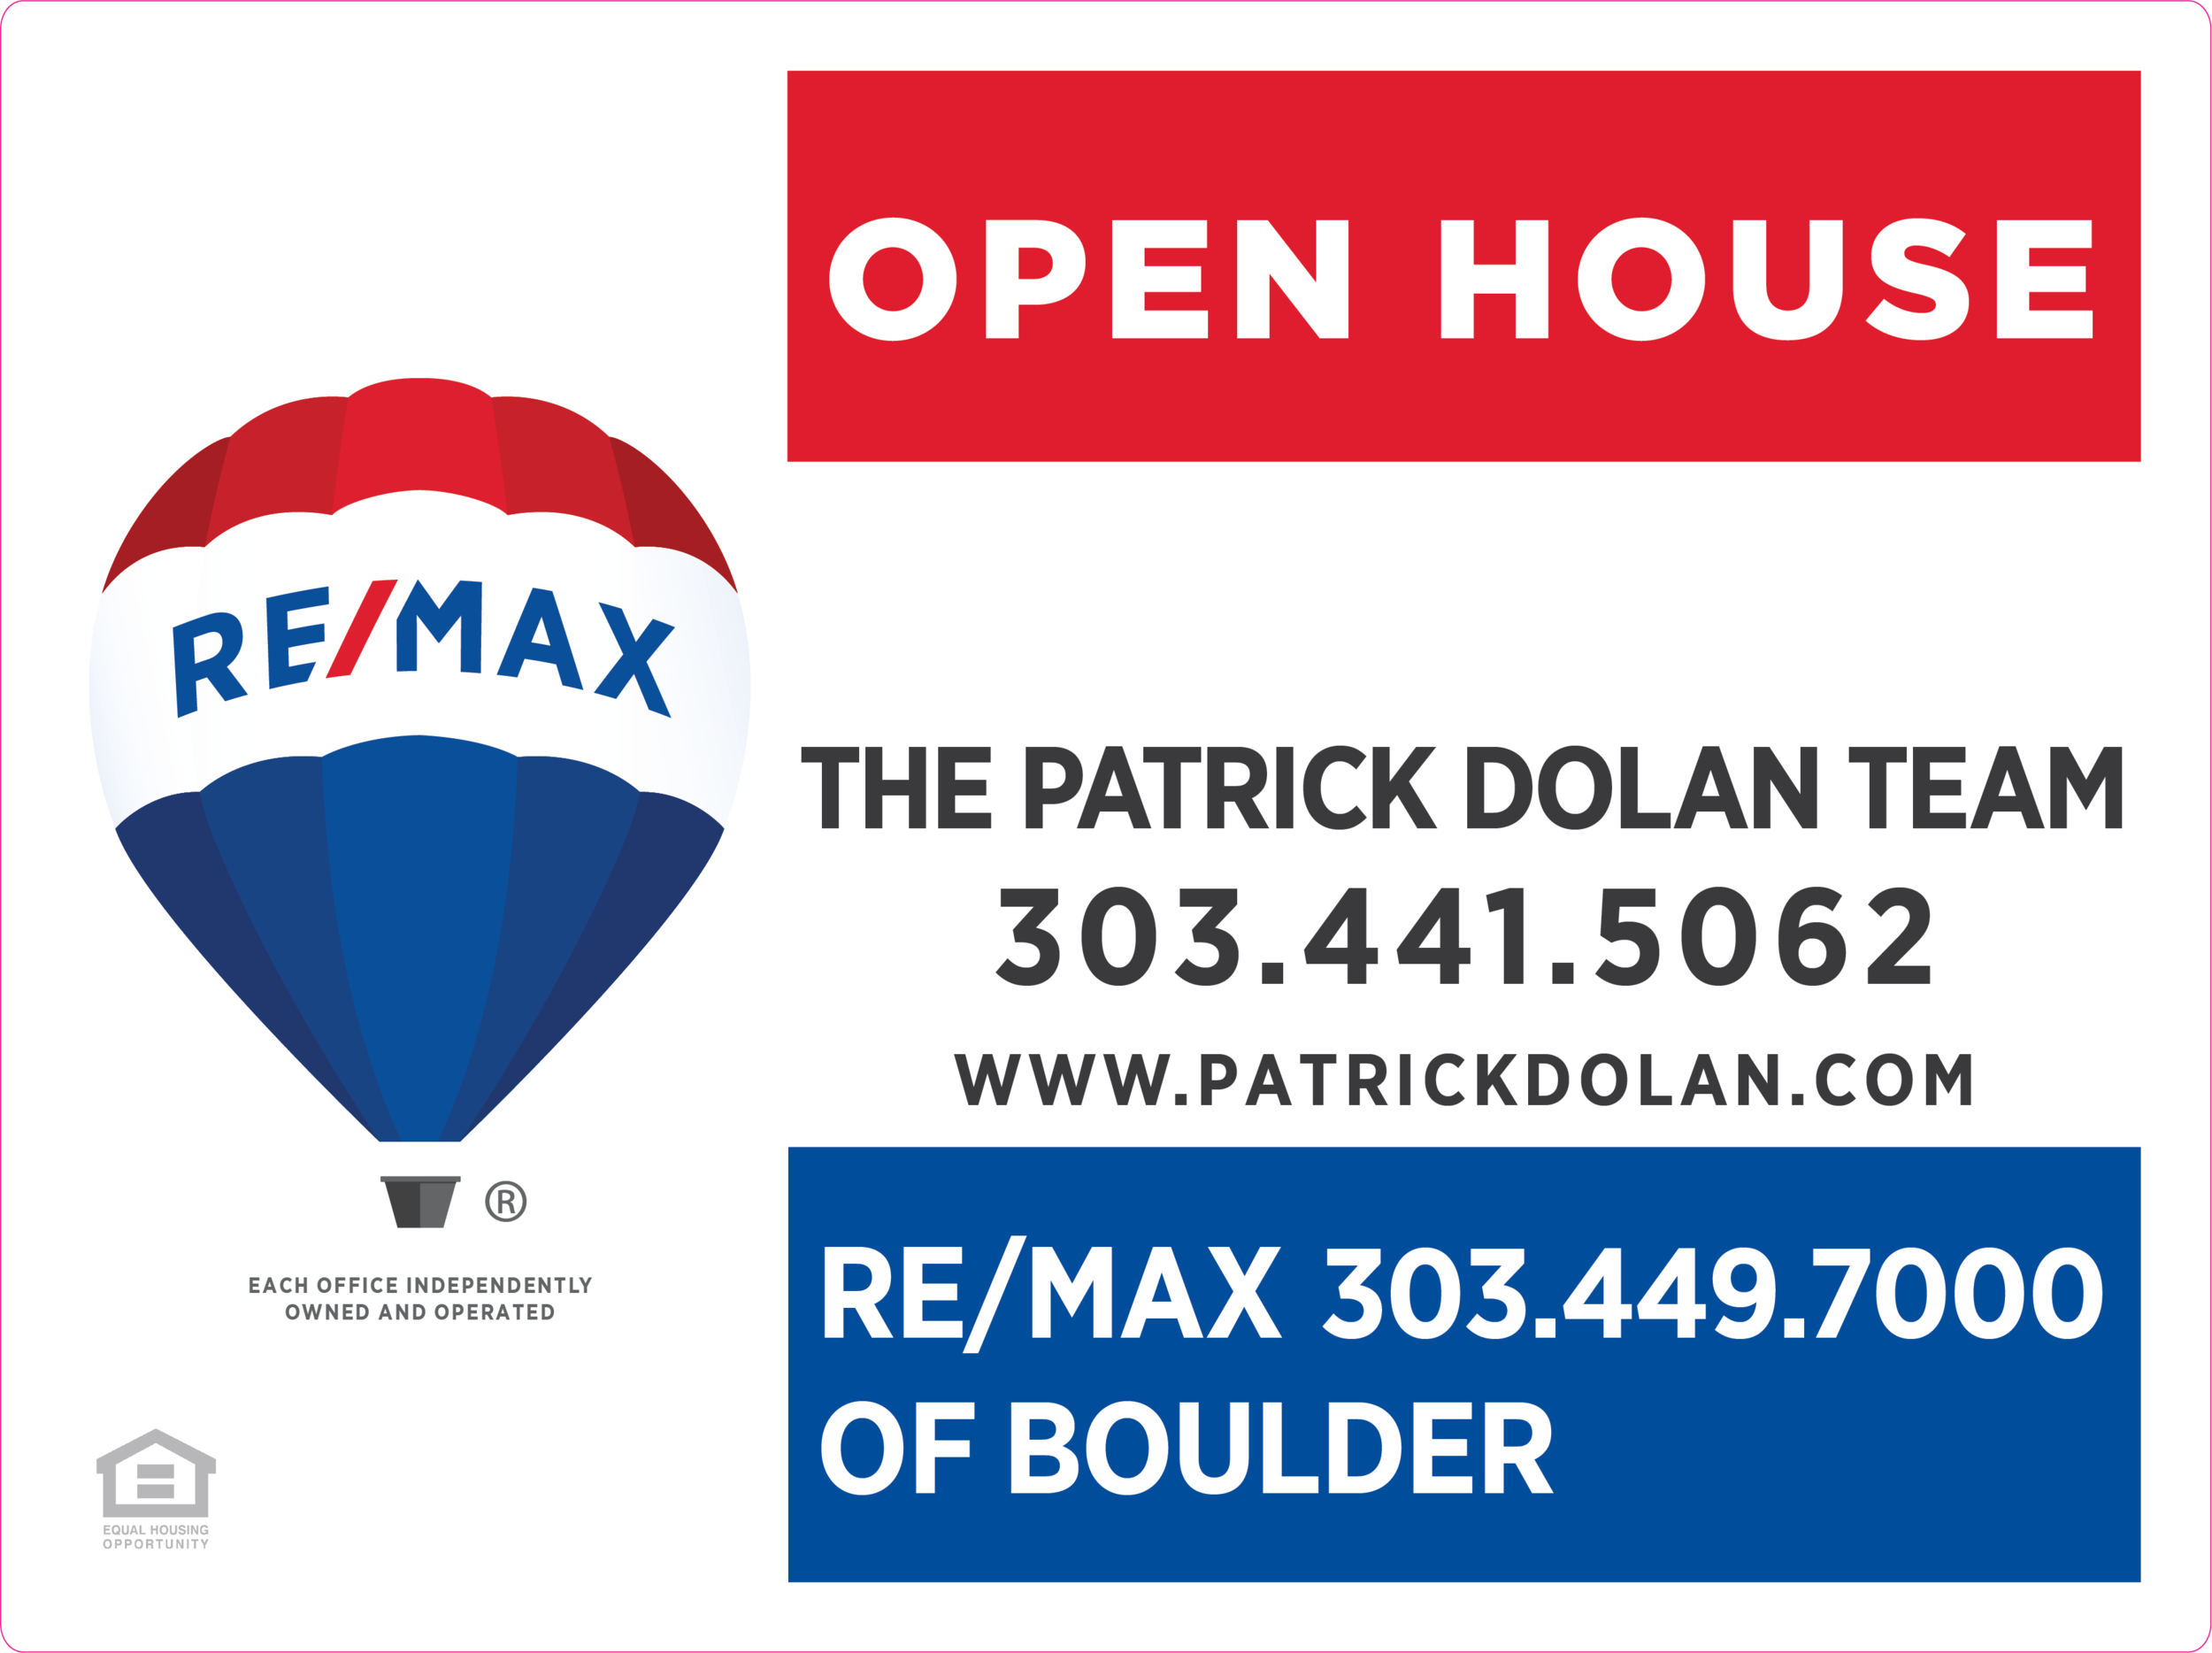 ReMax BLDR Patrick Dolan 18x24 OPEN HOUSE_6x24 P# RIDER Proof 05-15-19-01.png